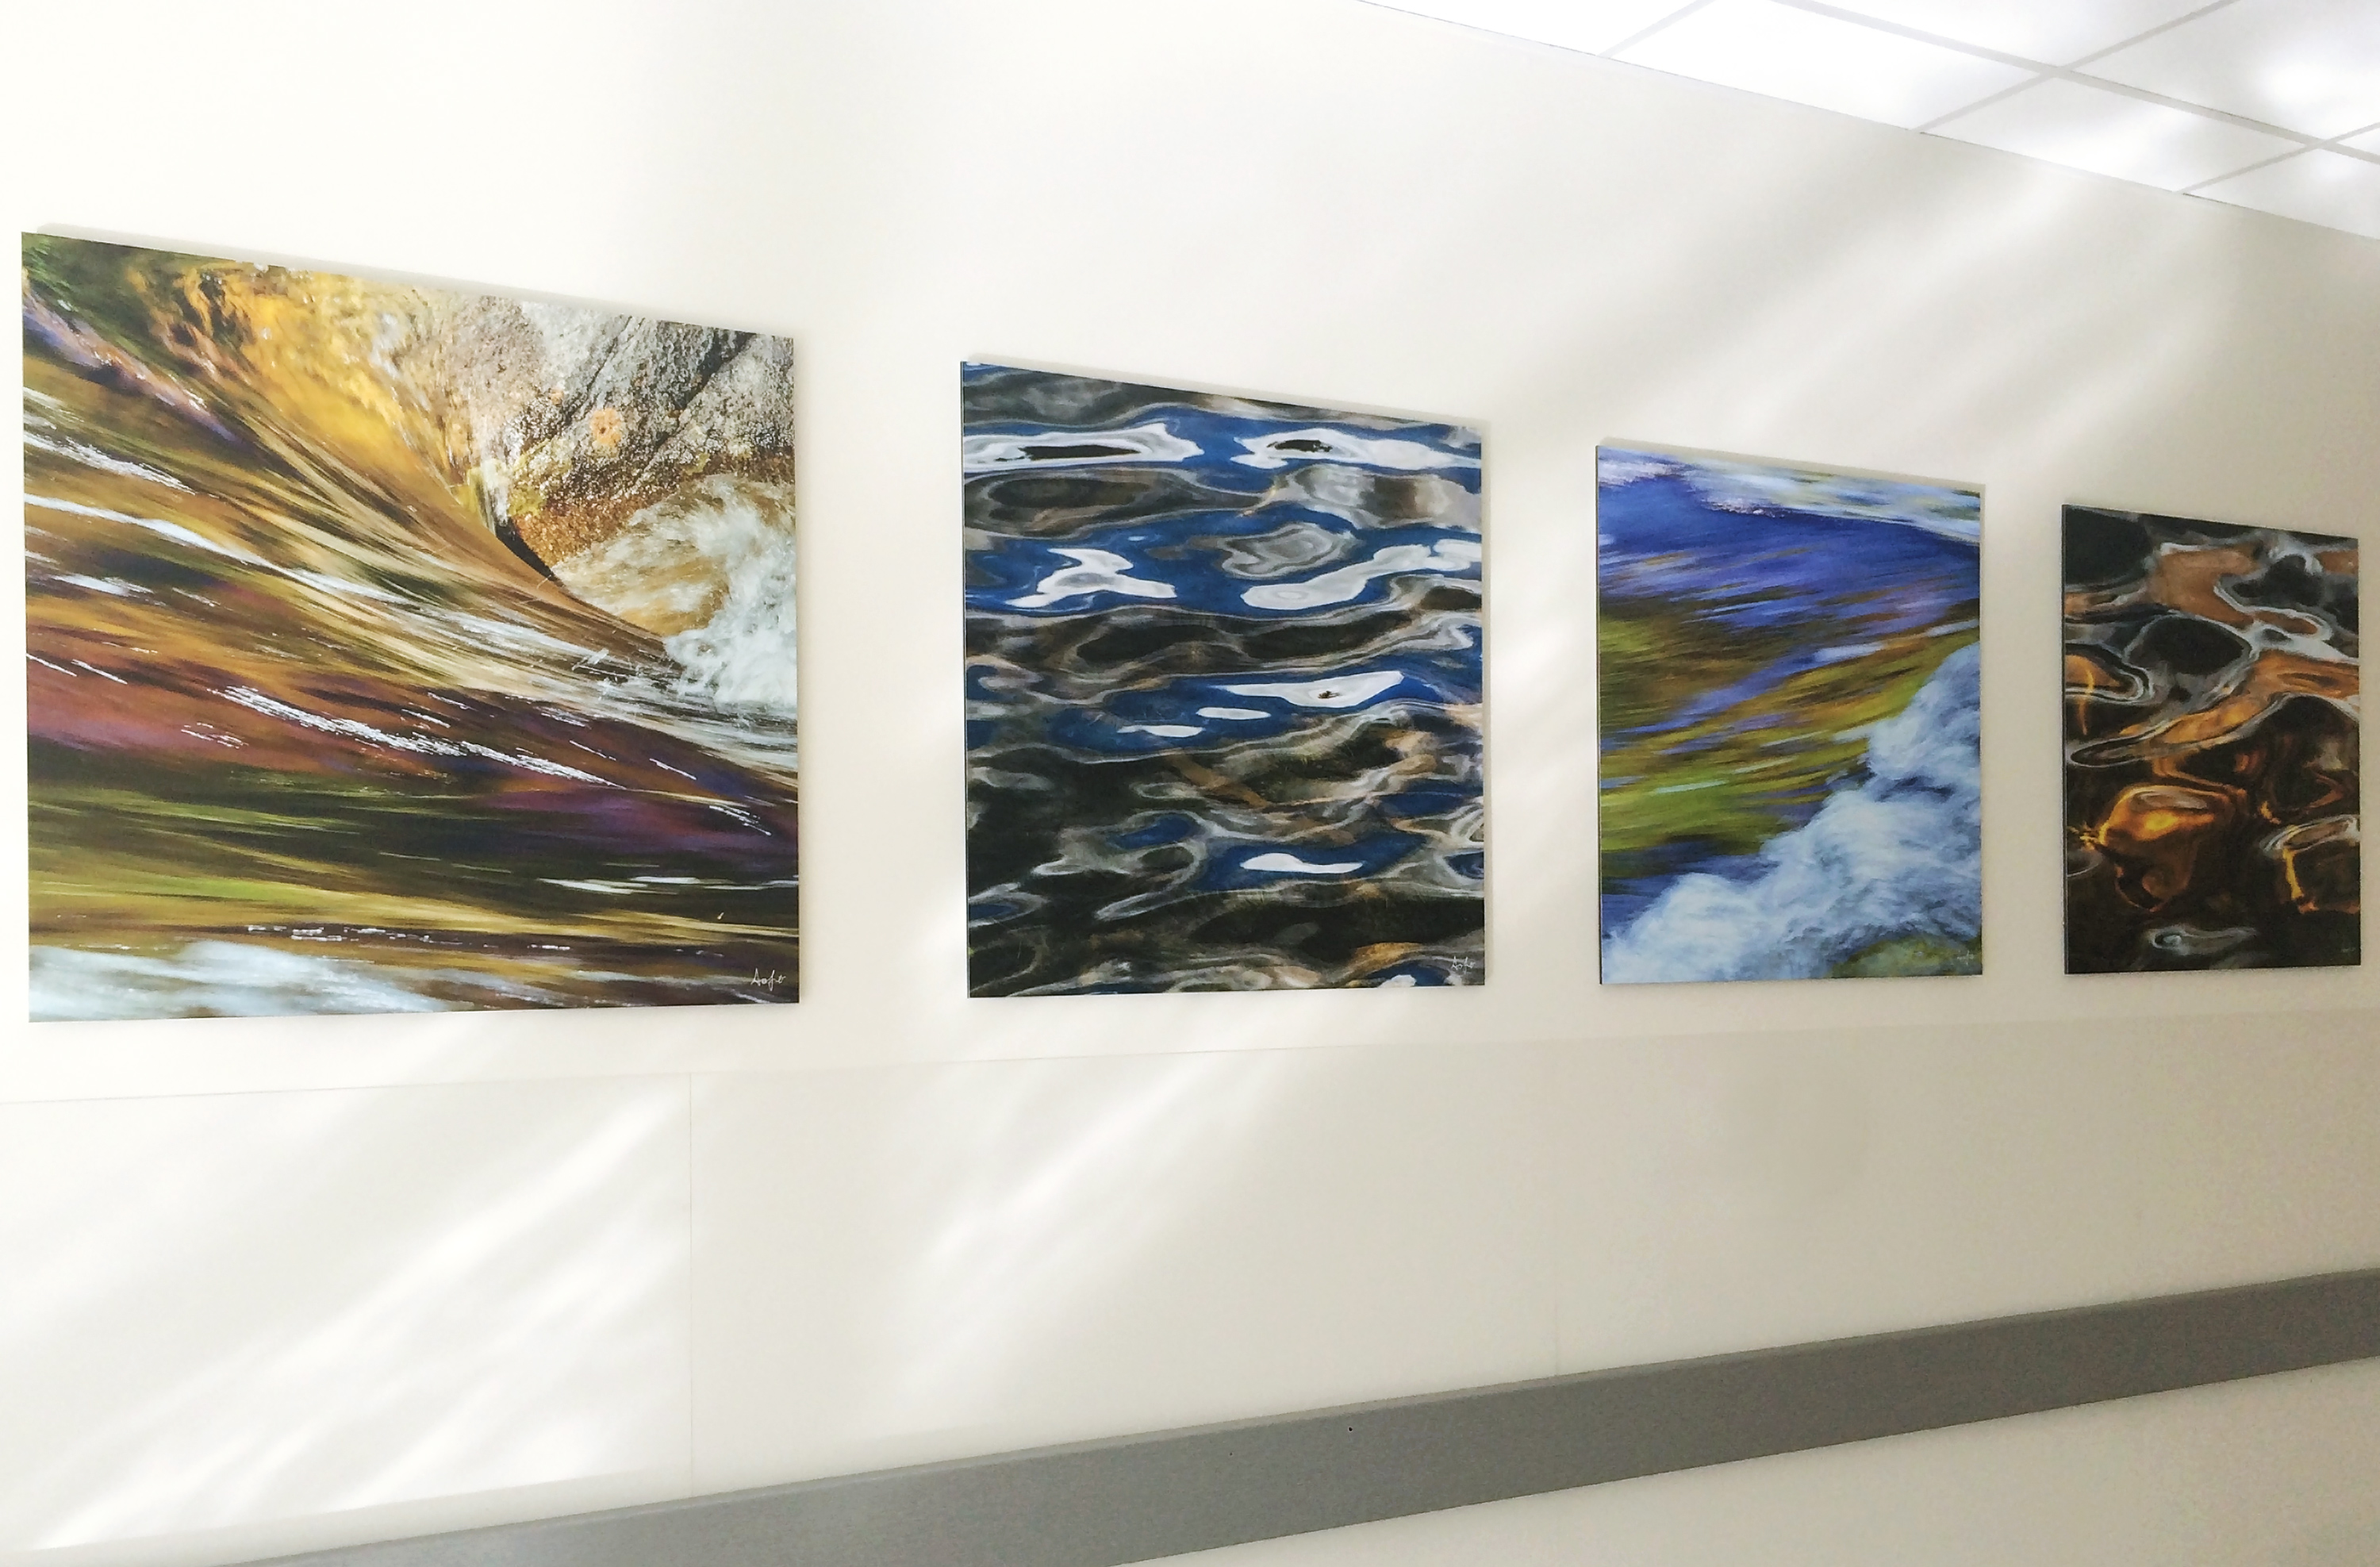 Photo of abstract nature image on Moxie panels in hospital waiting area